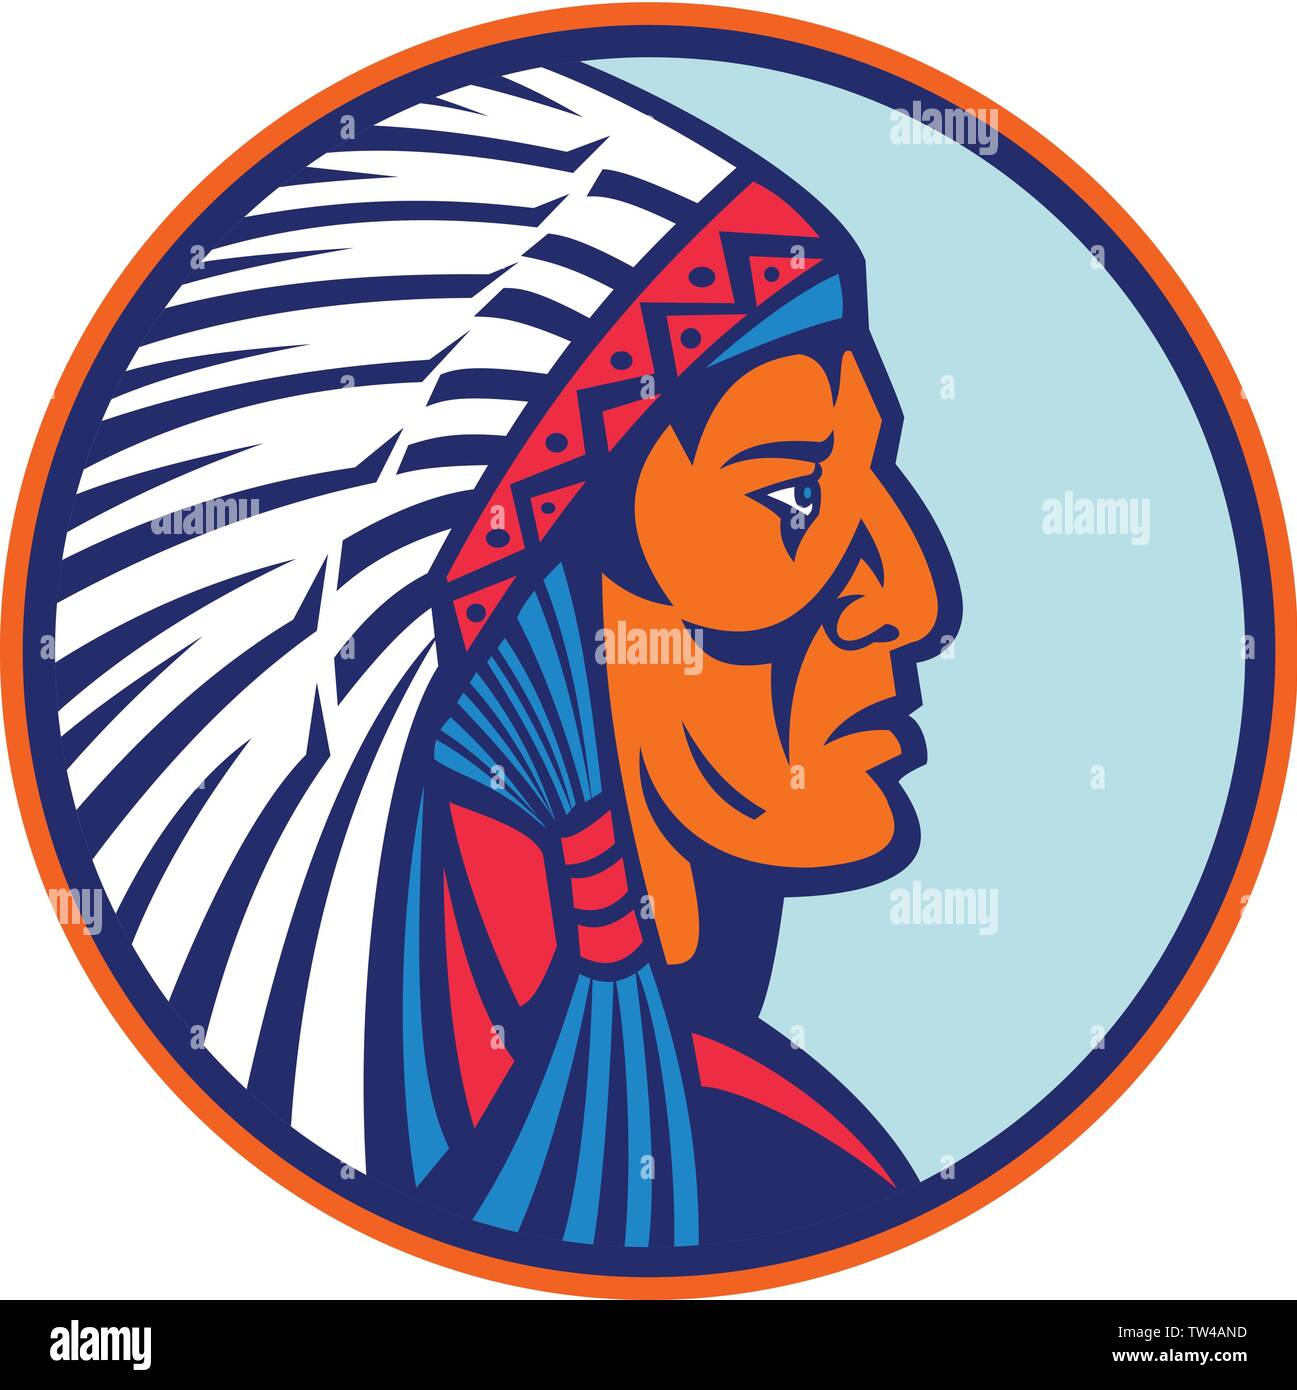 Mascot icon illustration of head of a Cheyenne brave, chief or warrior, one of the indigenous people of the Great Plains of North America wearing a wa - Stock Image